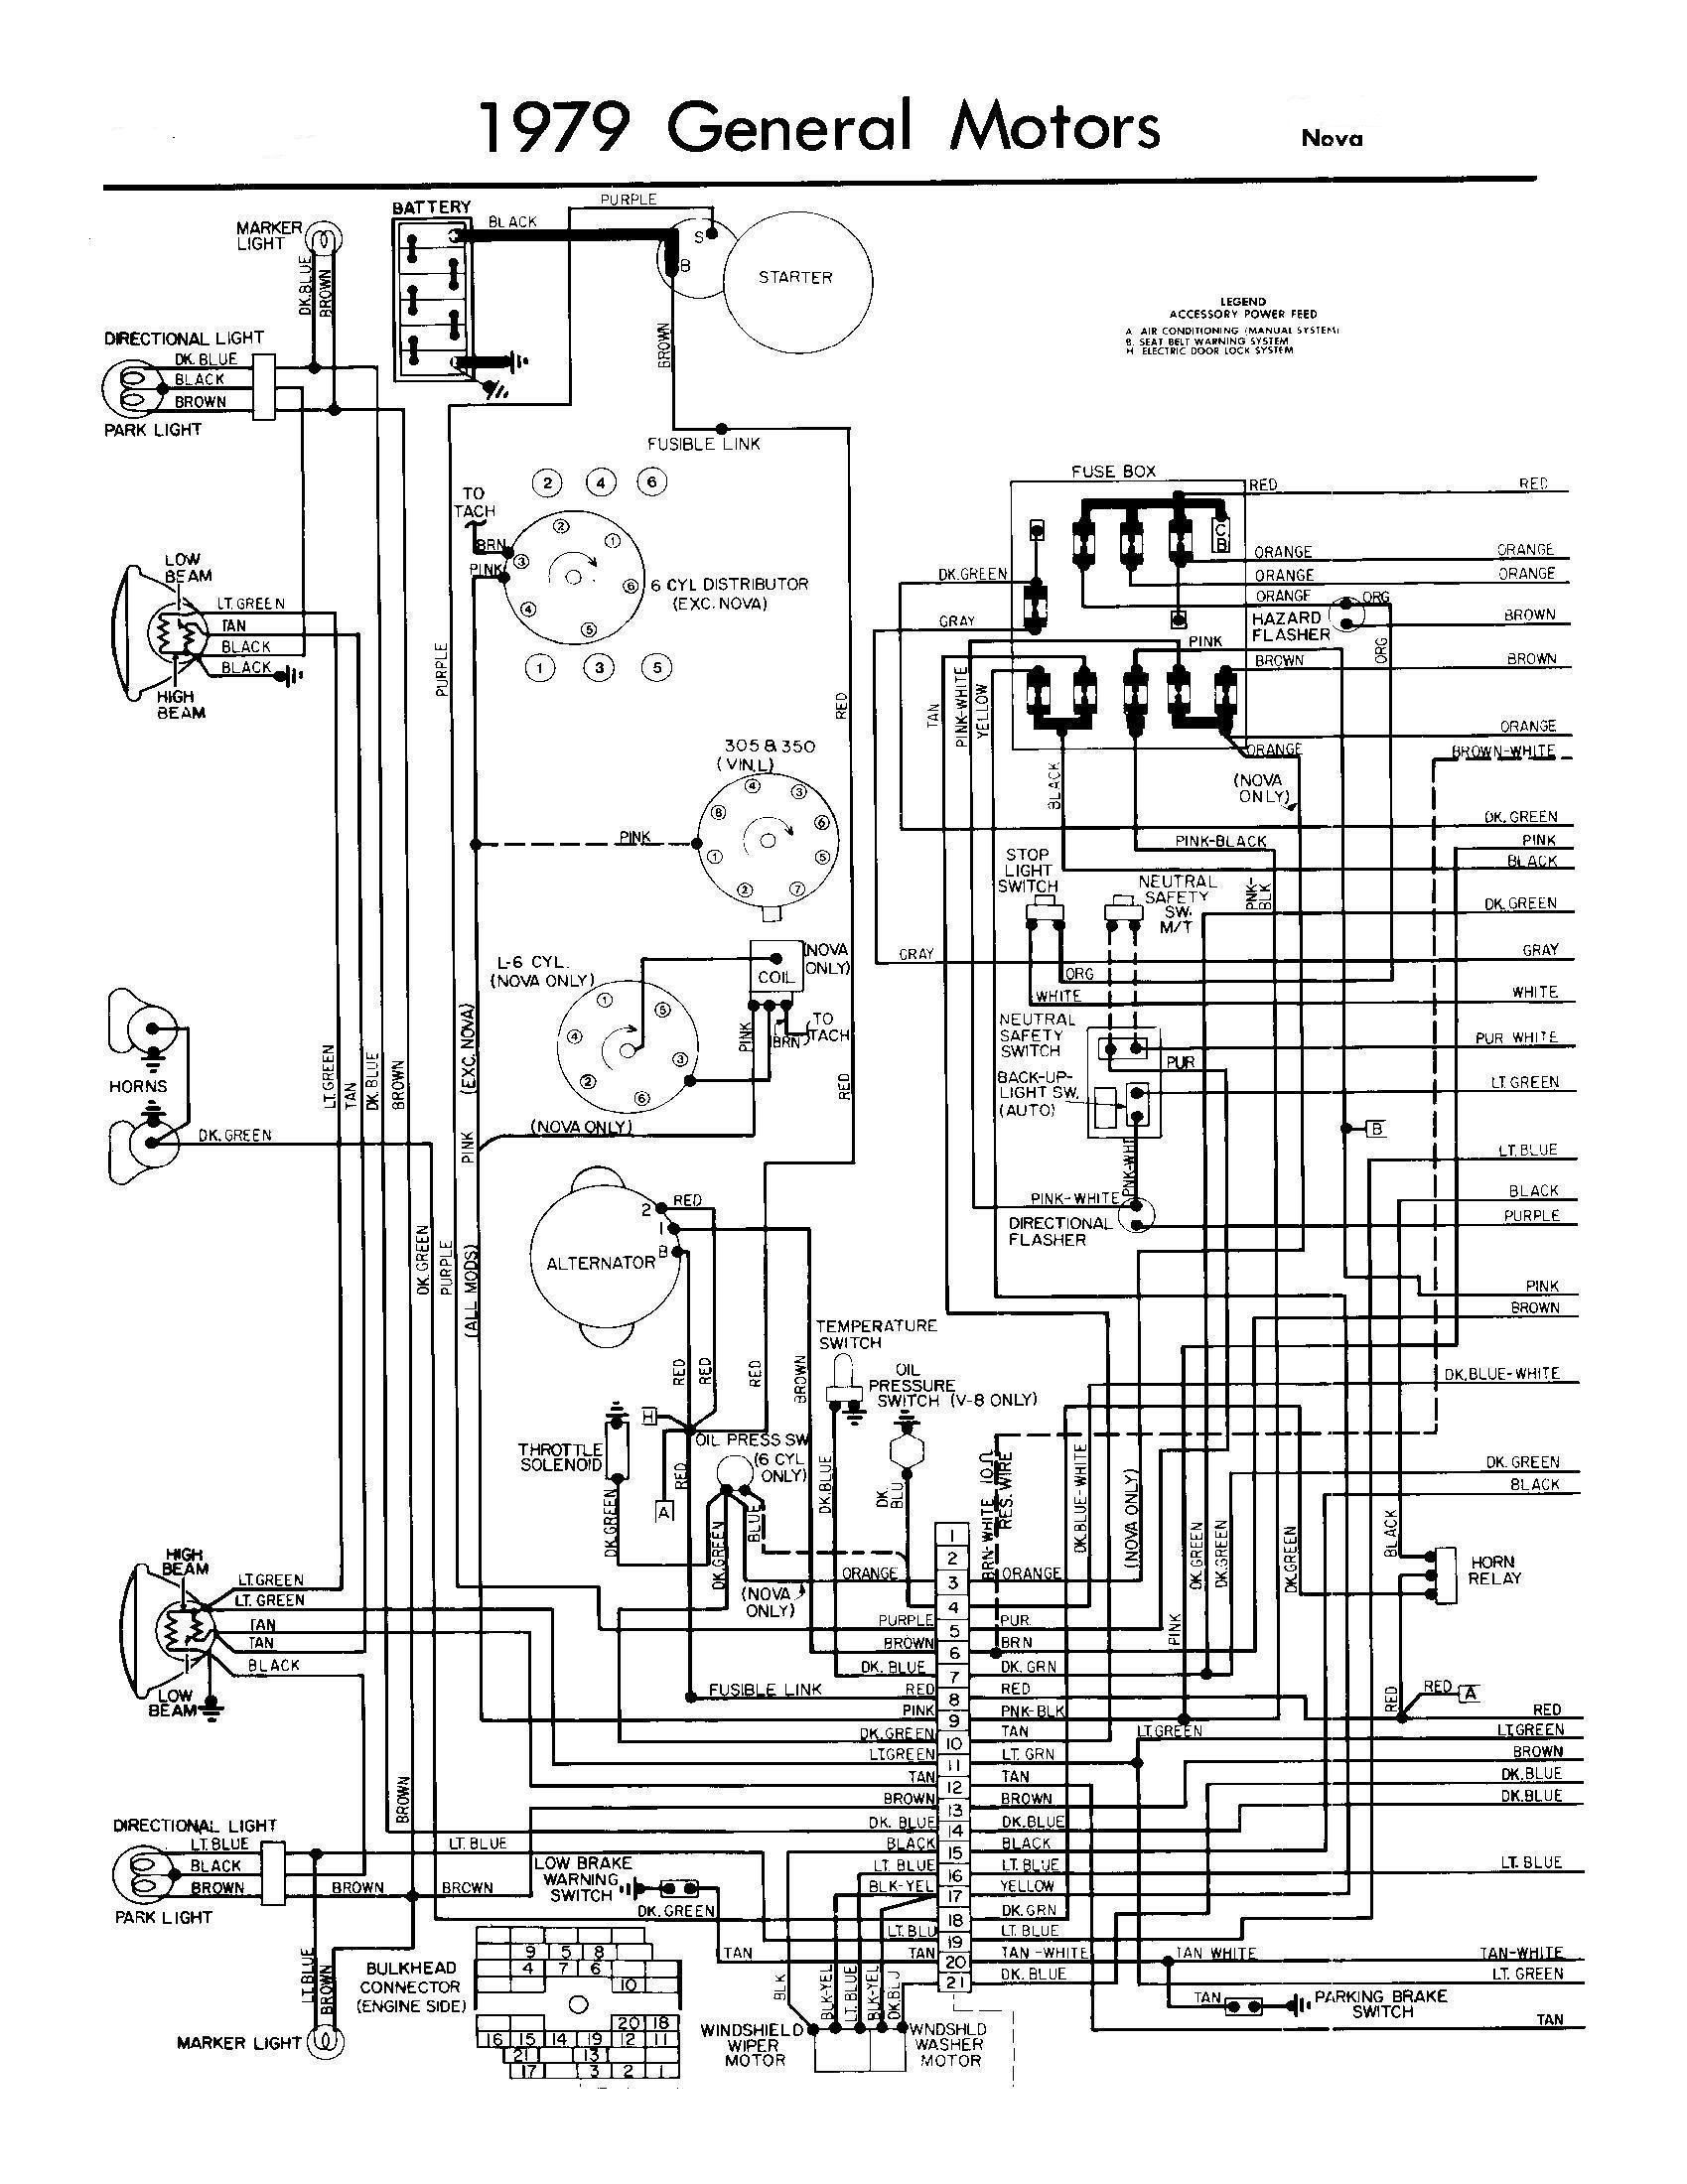 1954 chevy truck wiring diagram also boat fuel gauge wiring diagram